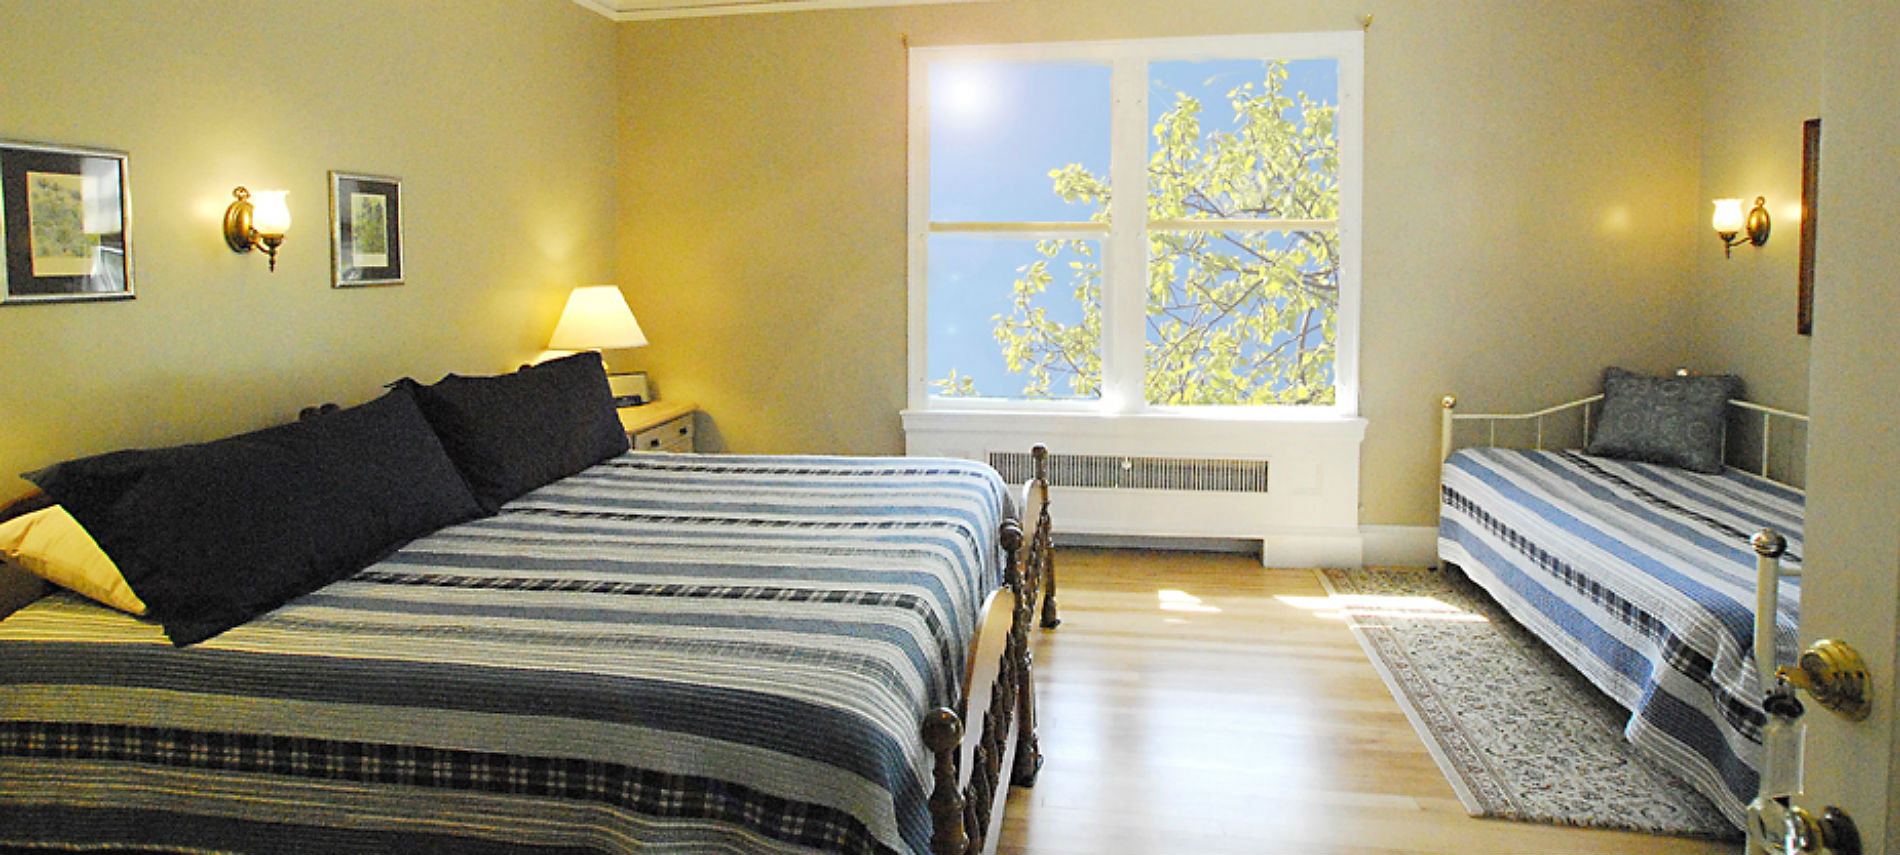 Bedroom with king sized bed and daybed covered with blue and white striped quilts.